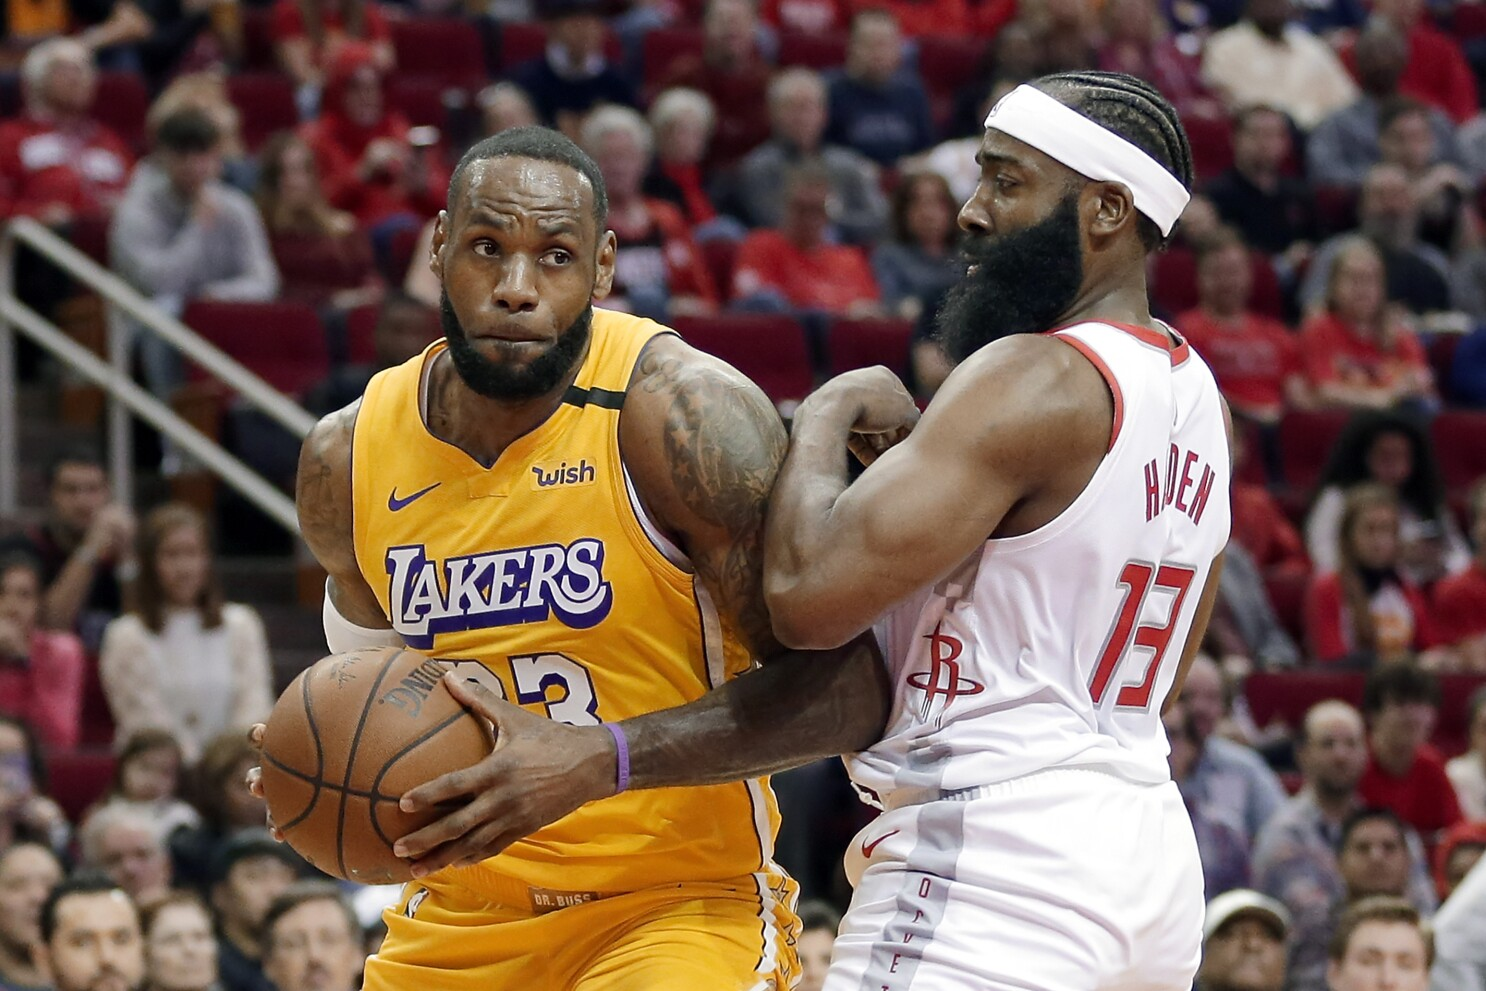 Lakers dominate in the second half to beat Rockets - Los Angeles Times